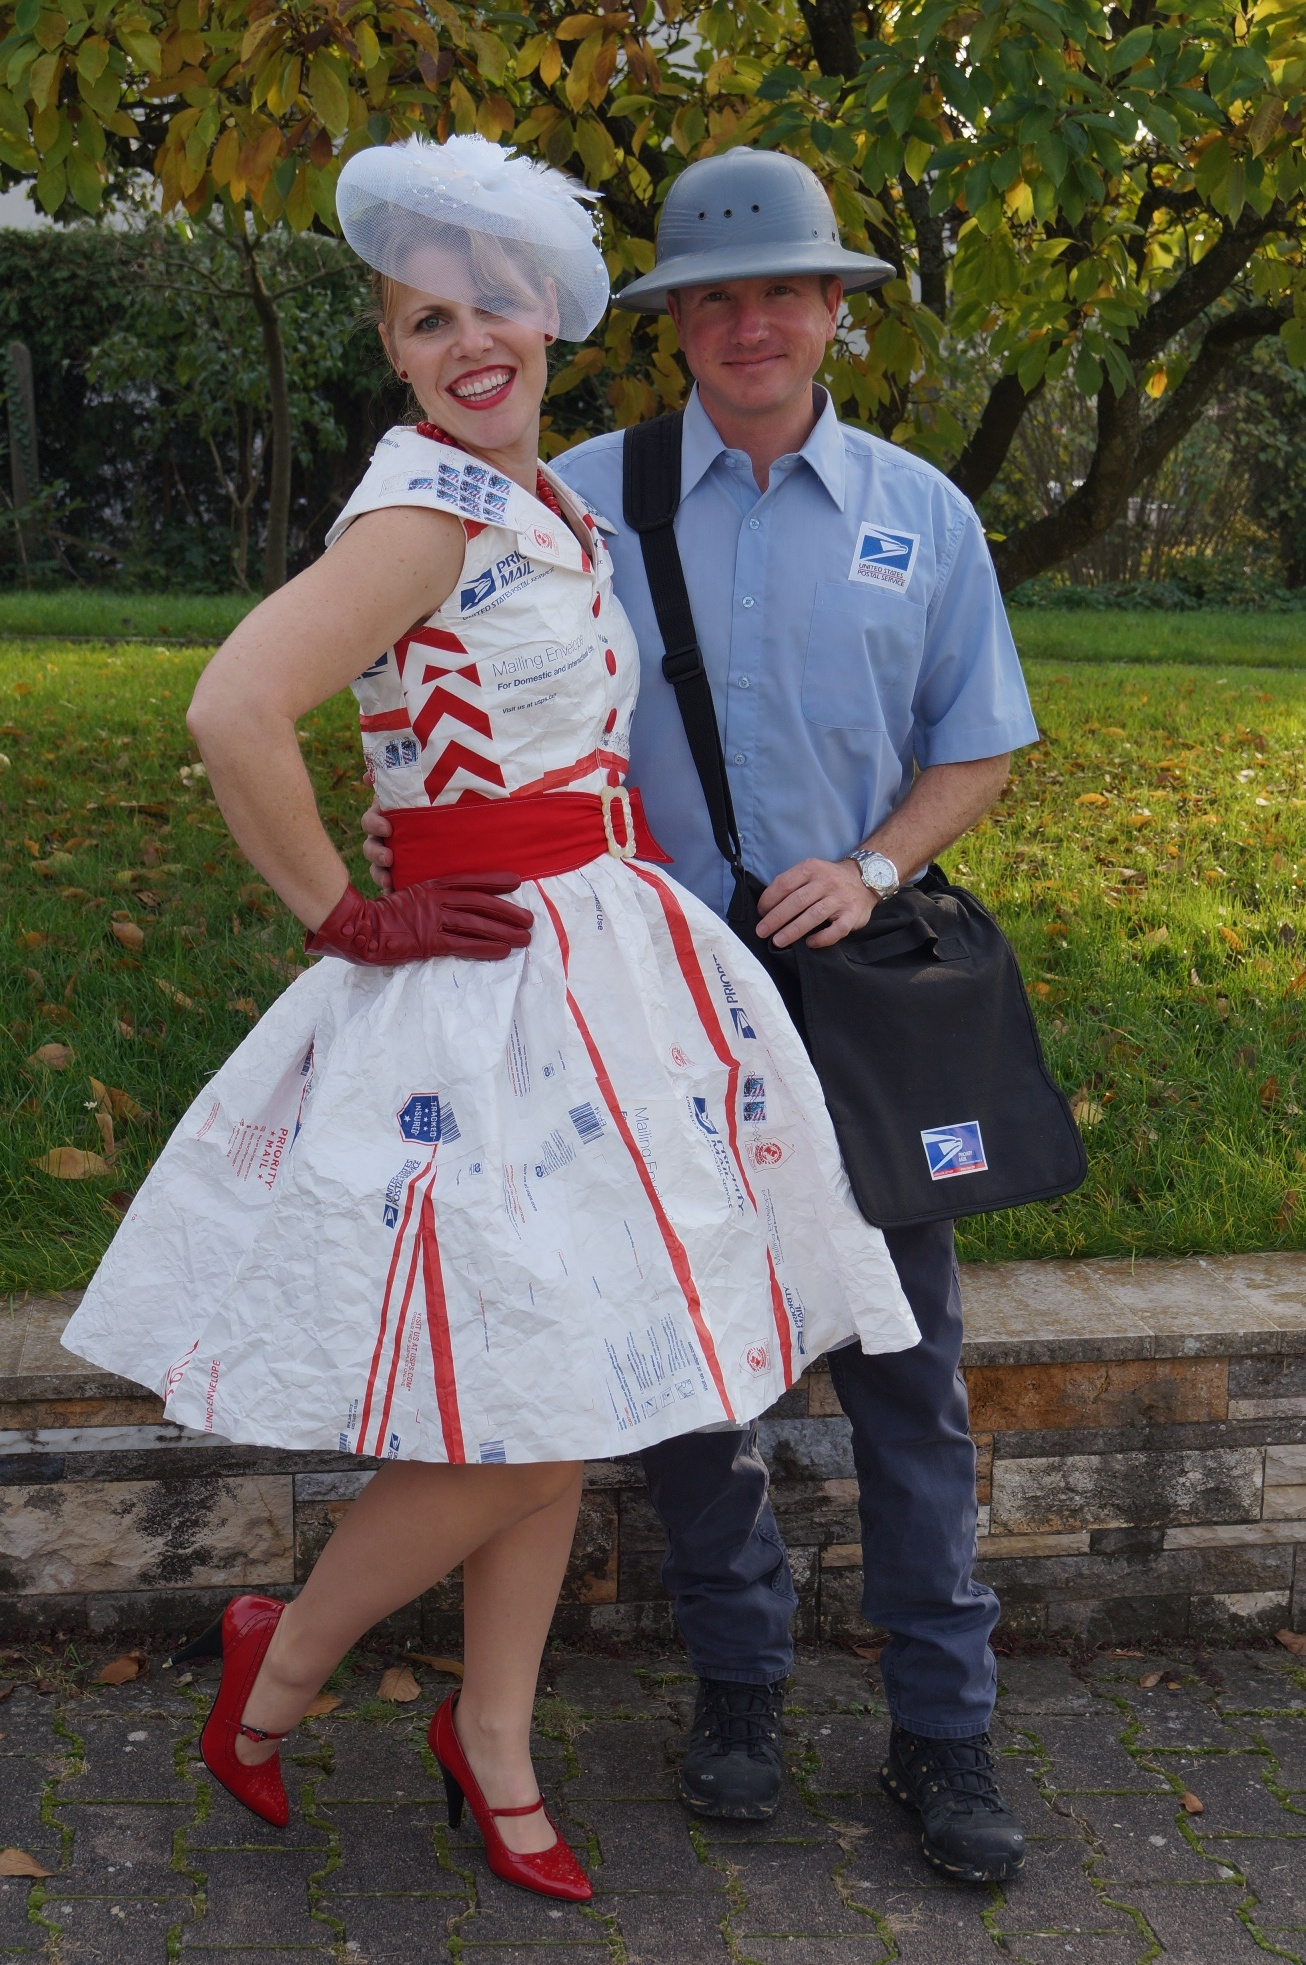 Halloween Fun Mail Order Bride And Mail Man